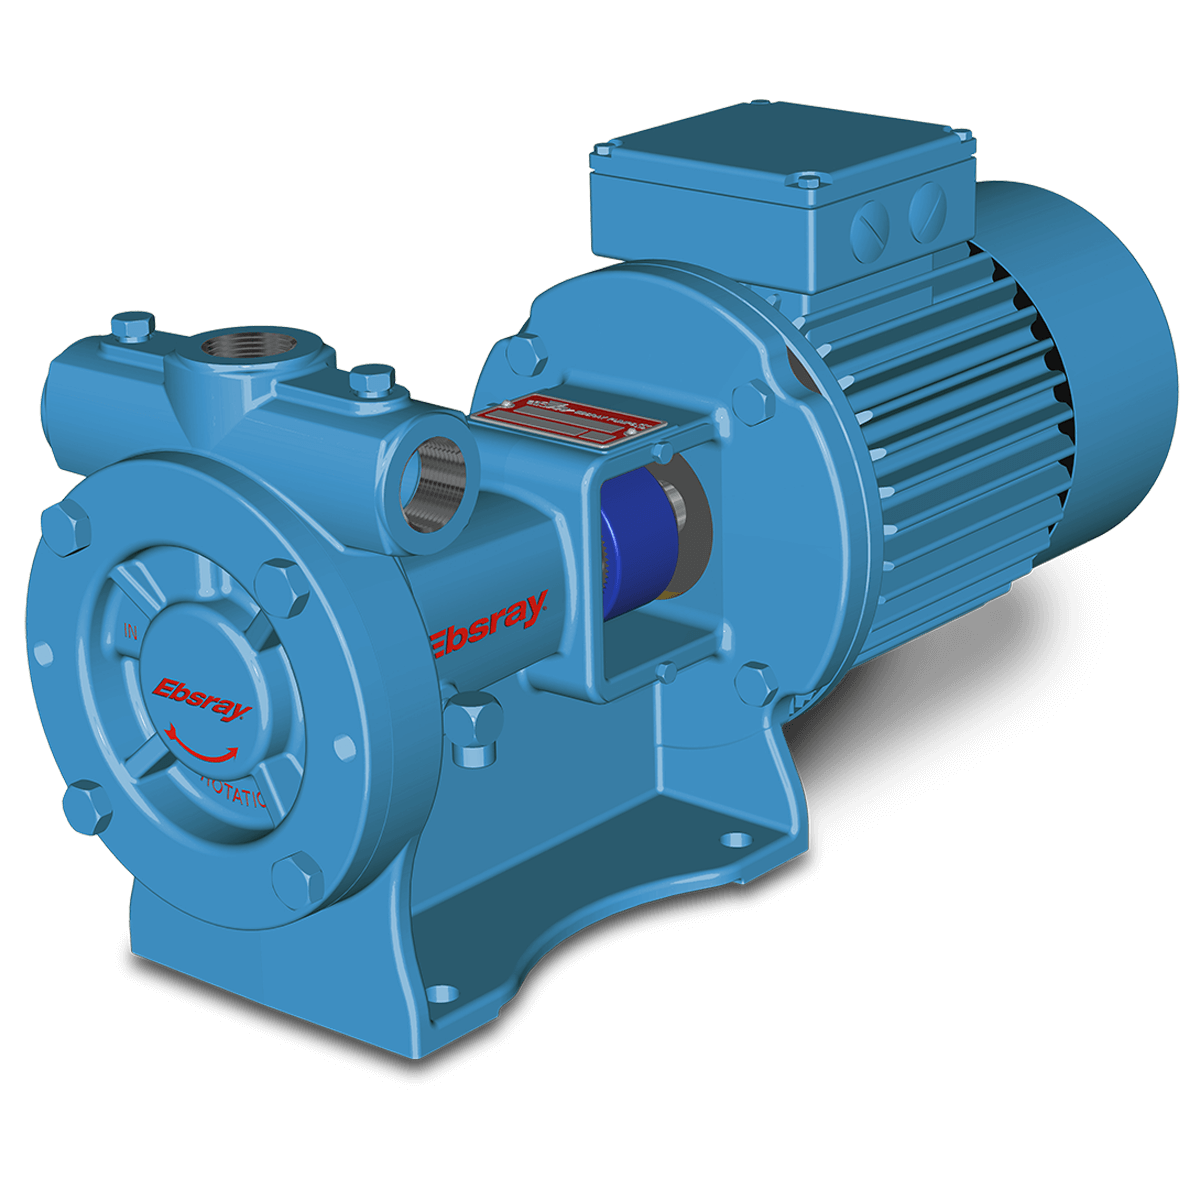 Blackmer_Ebsray_RC25_Regenerative_Turbine_Pump_Motor_4